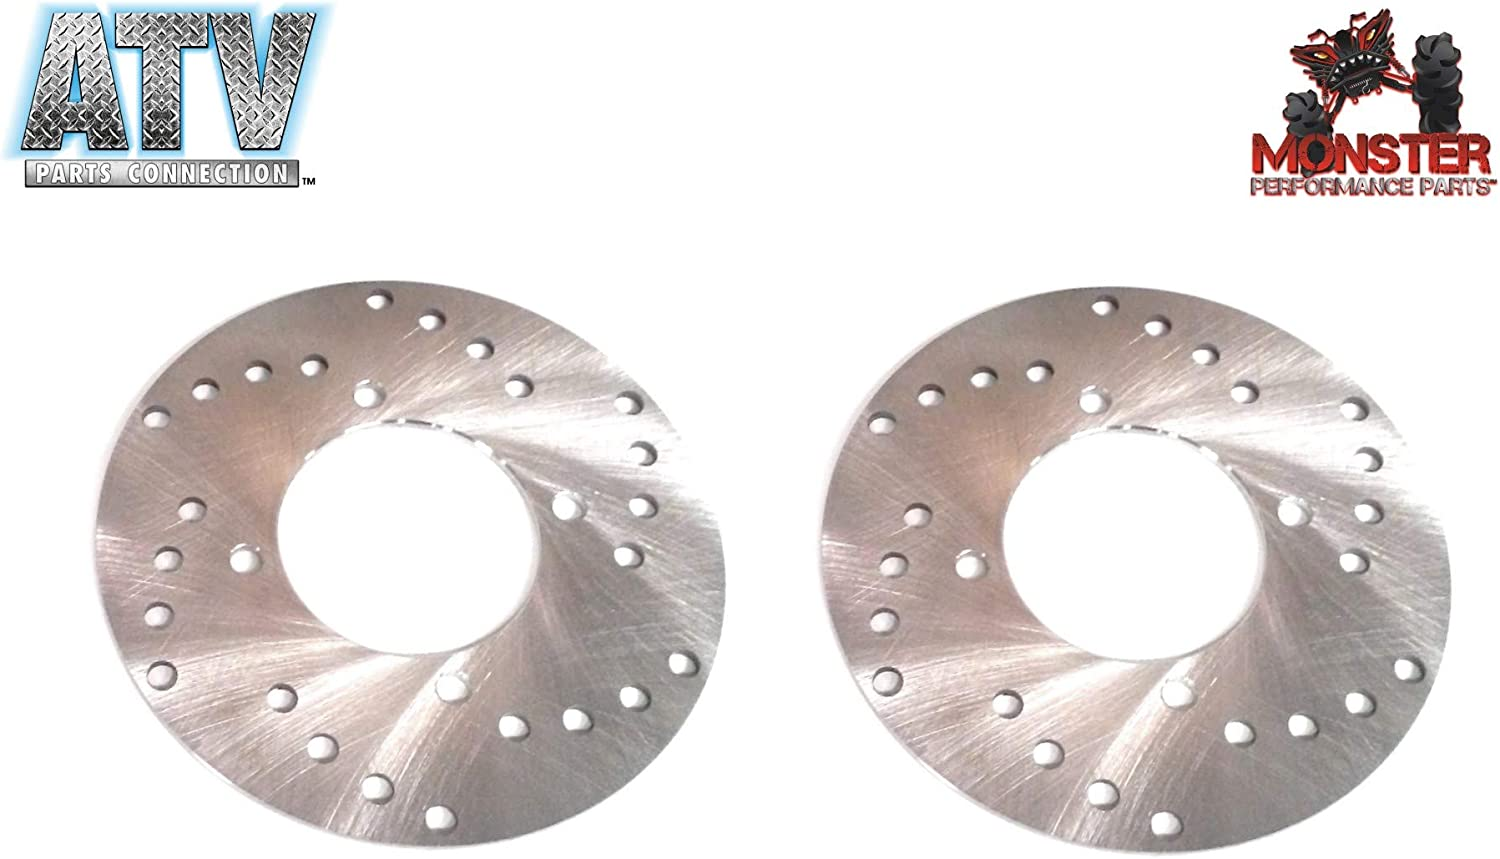 Pair of Front Left /& Right Disc Brake Rotors for Polaris 2x4 Replacement to OE # 5211271 4x4 ATV 5211325